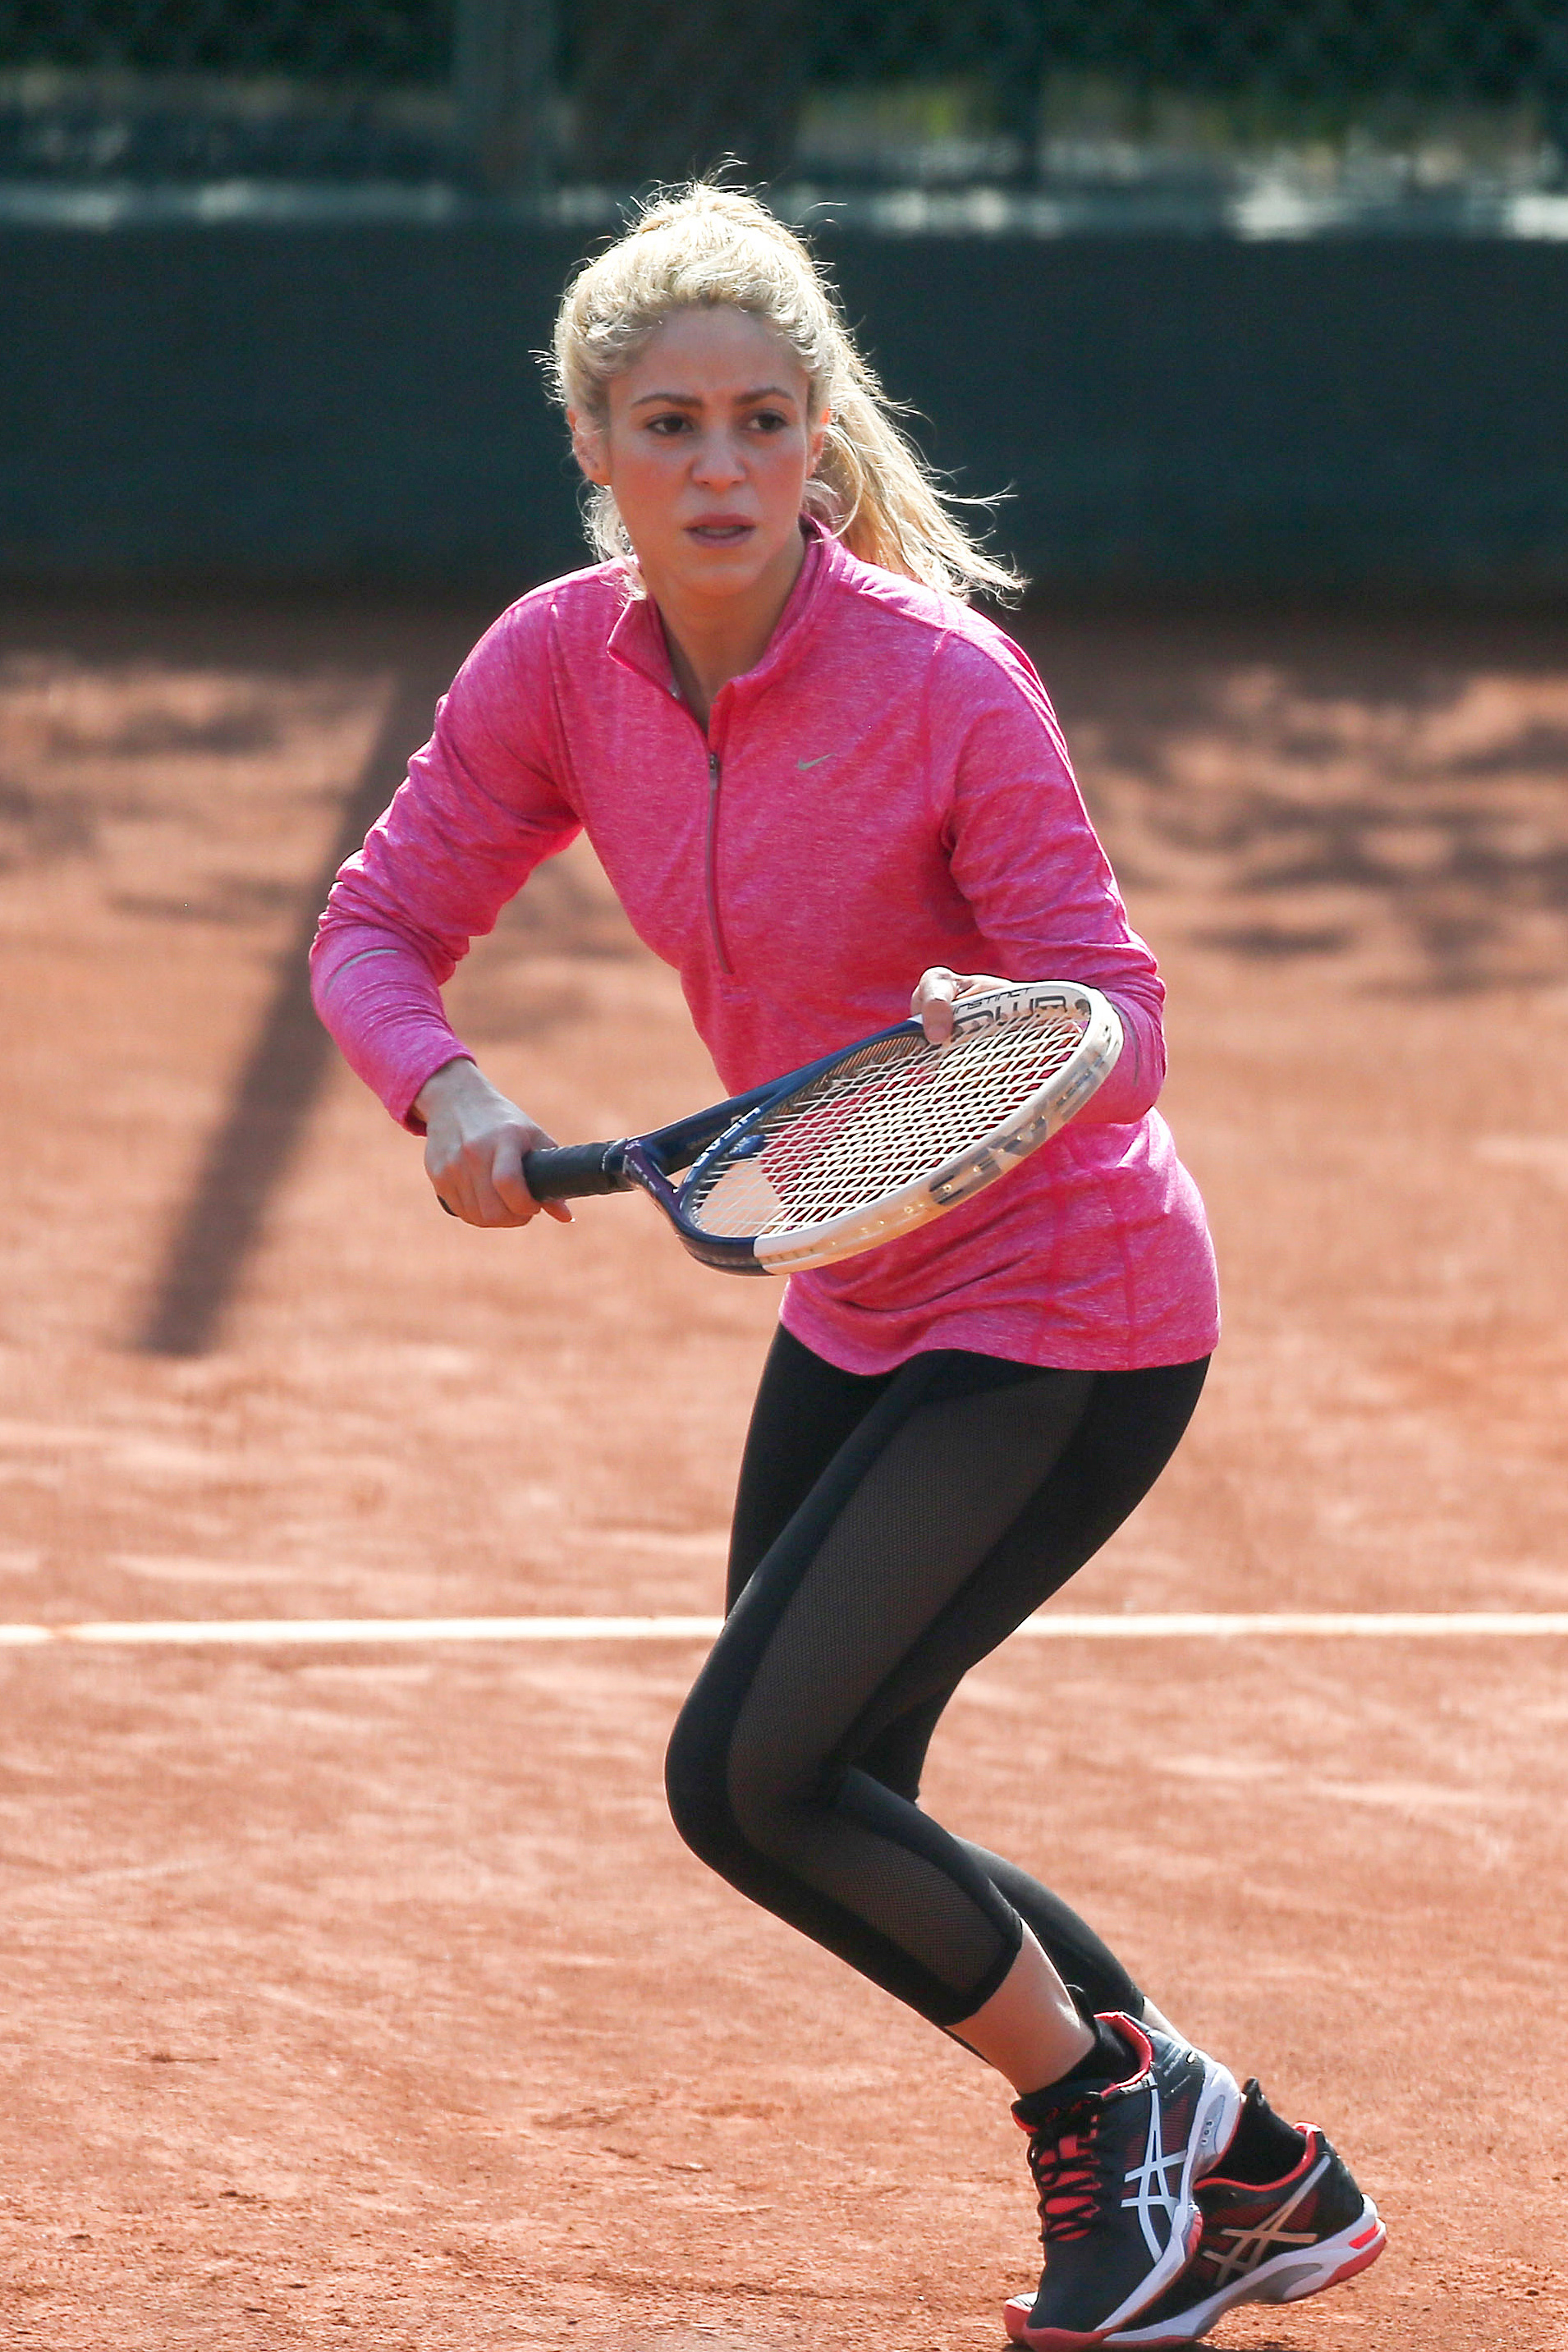 Shakira Practice Her Skills On The Tennis Court As Gerard Pique Watches From Outside